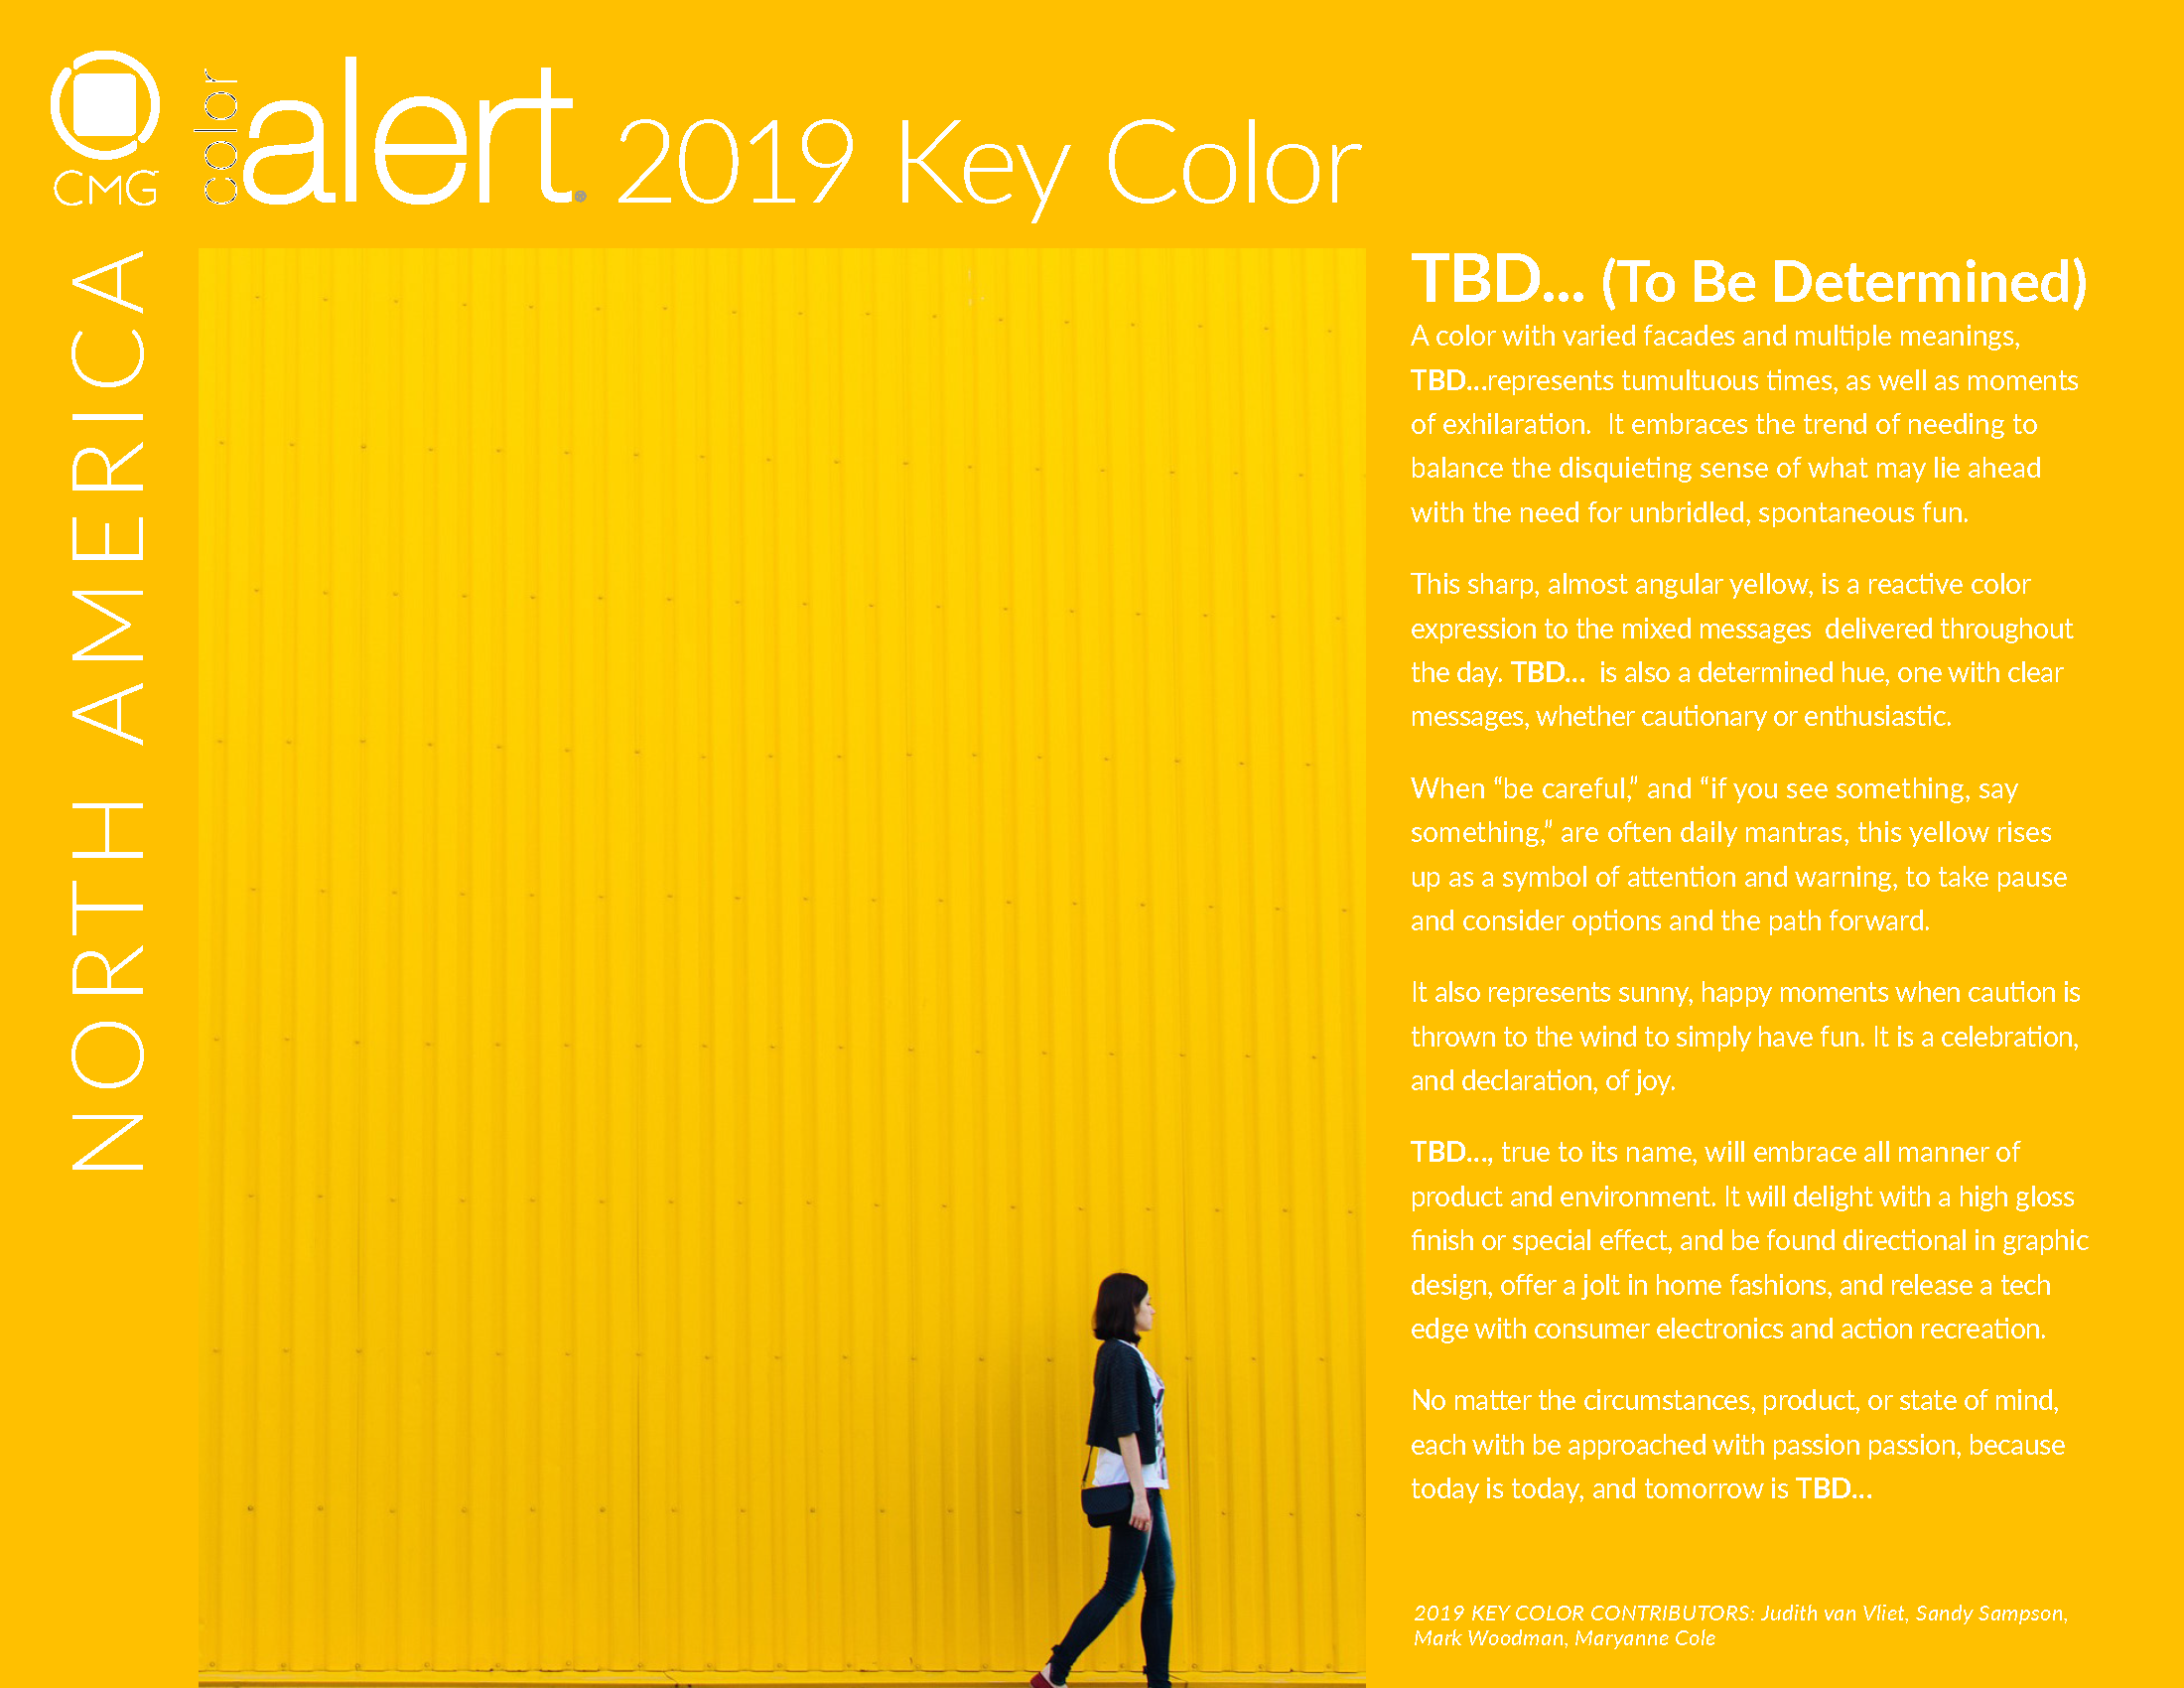 CMG 2019 KEY COLOR TBD... (TO BE DETERMINED)